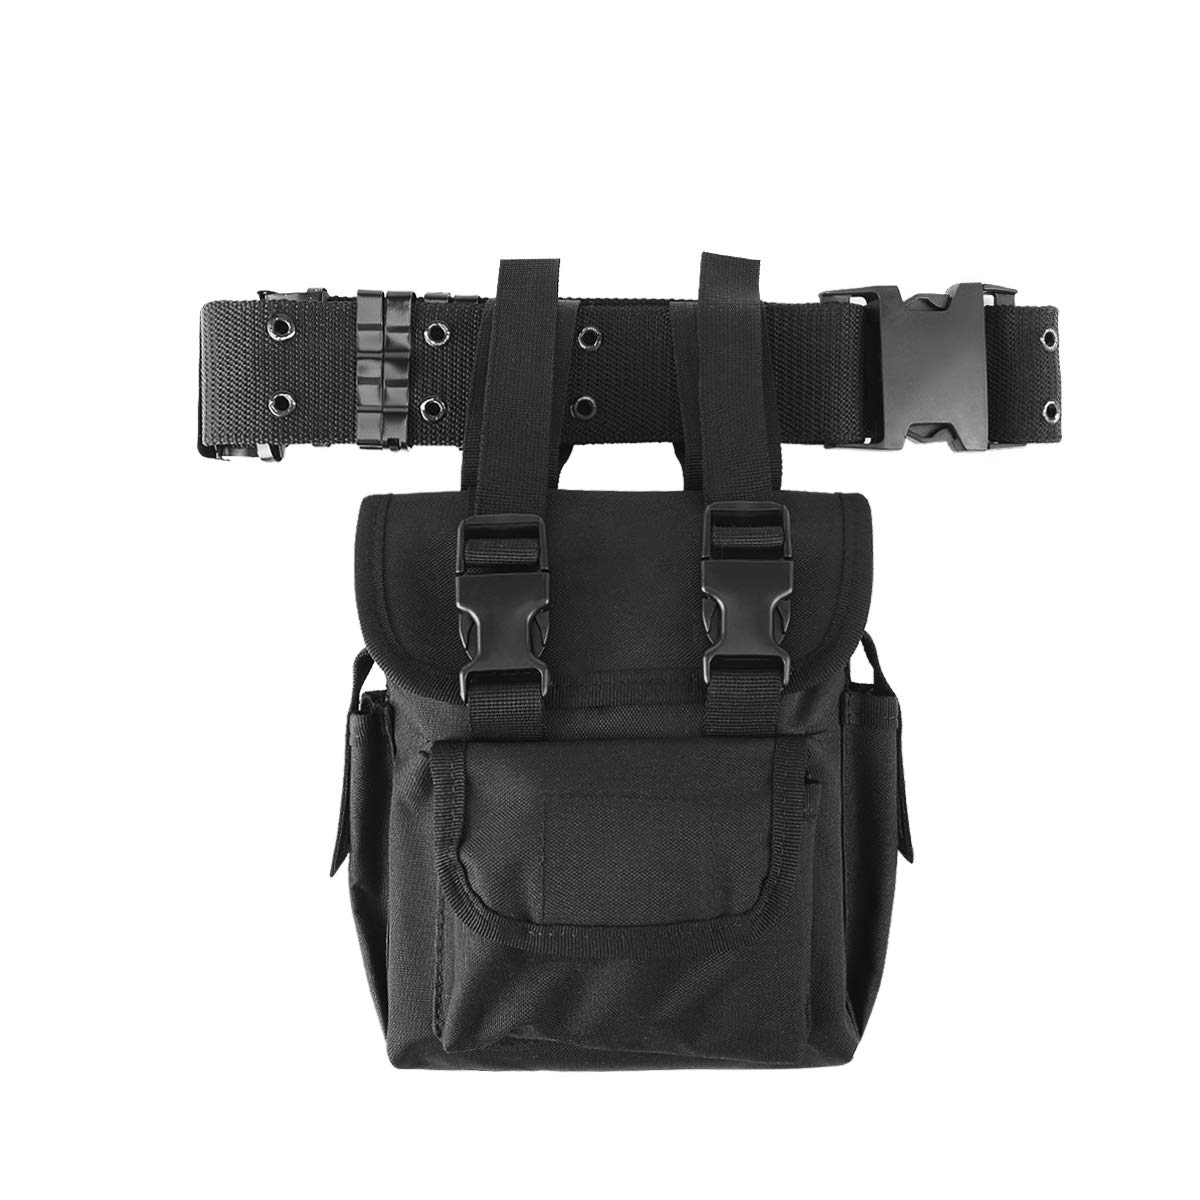 Drop Leg Waist Bags for Paintball Airsoft Cycling Hiking ZONE FR Leg Bag Military Tactical Pouch